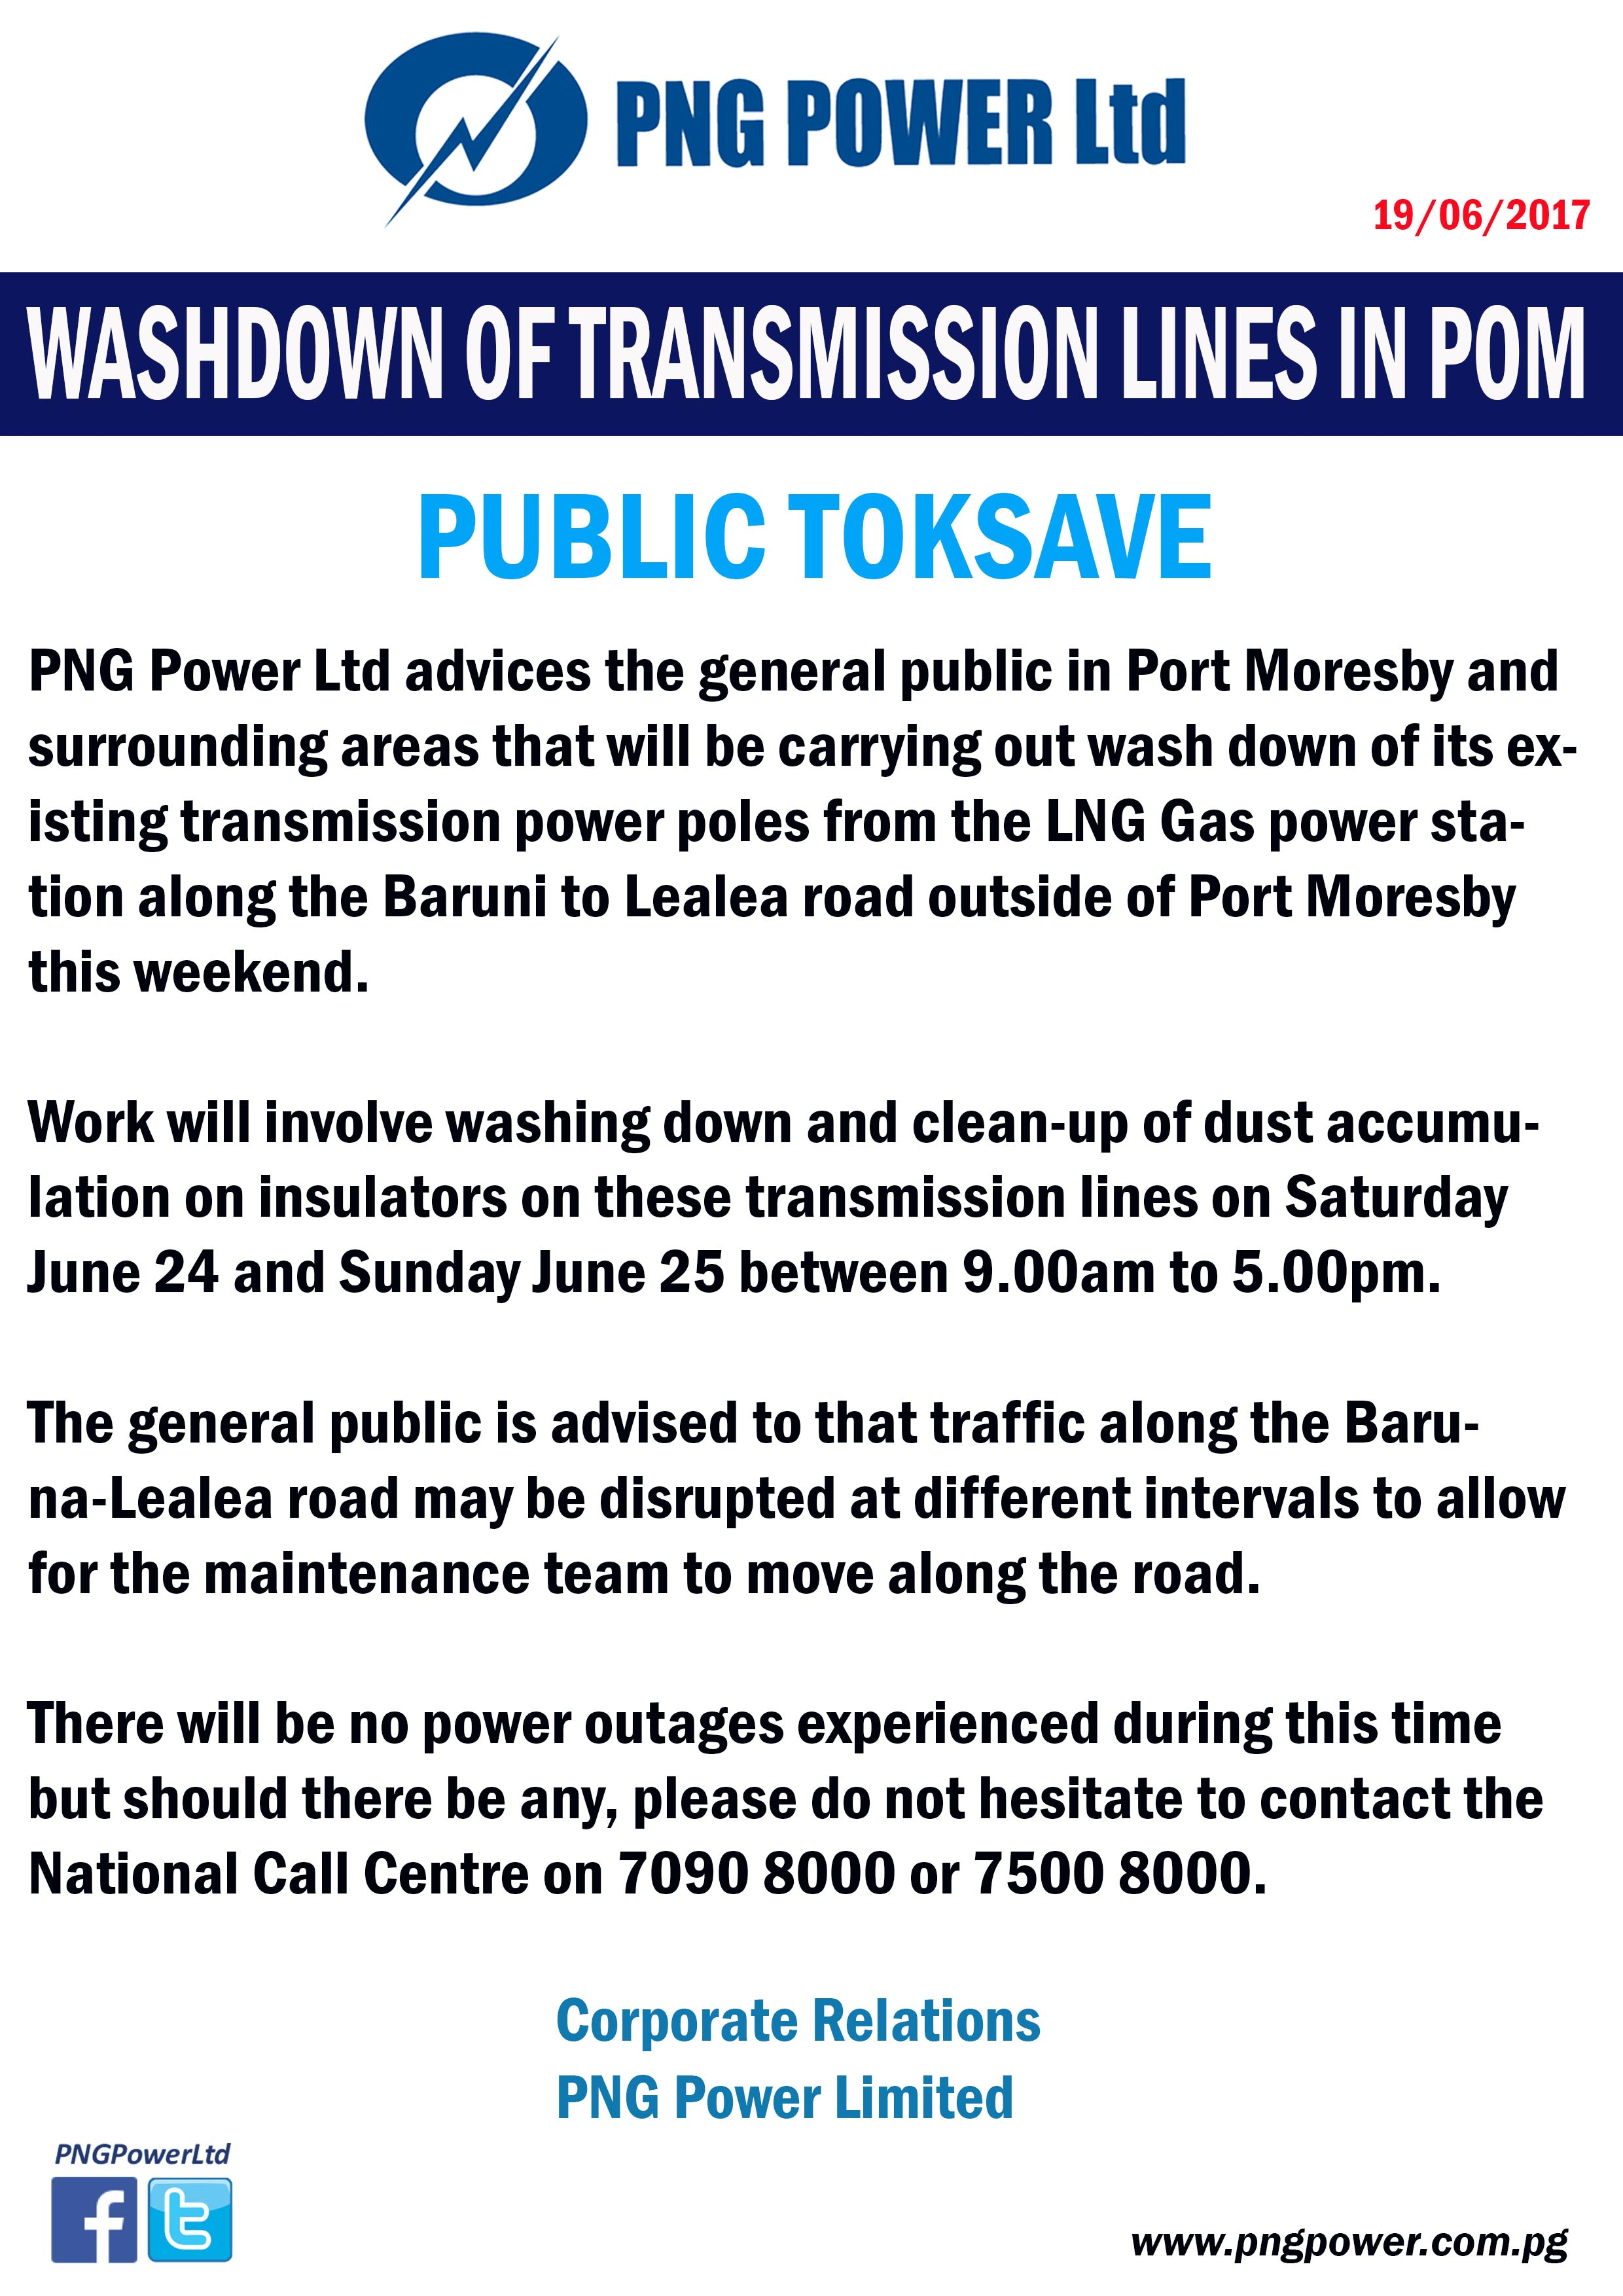 WASHDOWN OF TRANSMISSION LINES IN PORT MOREBY